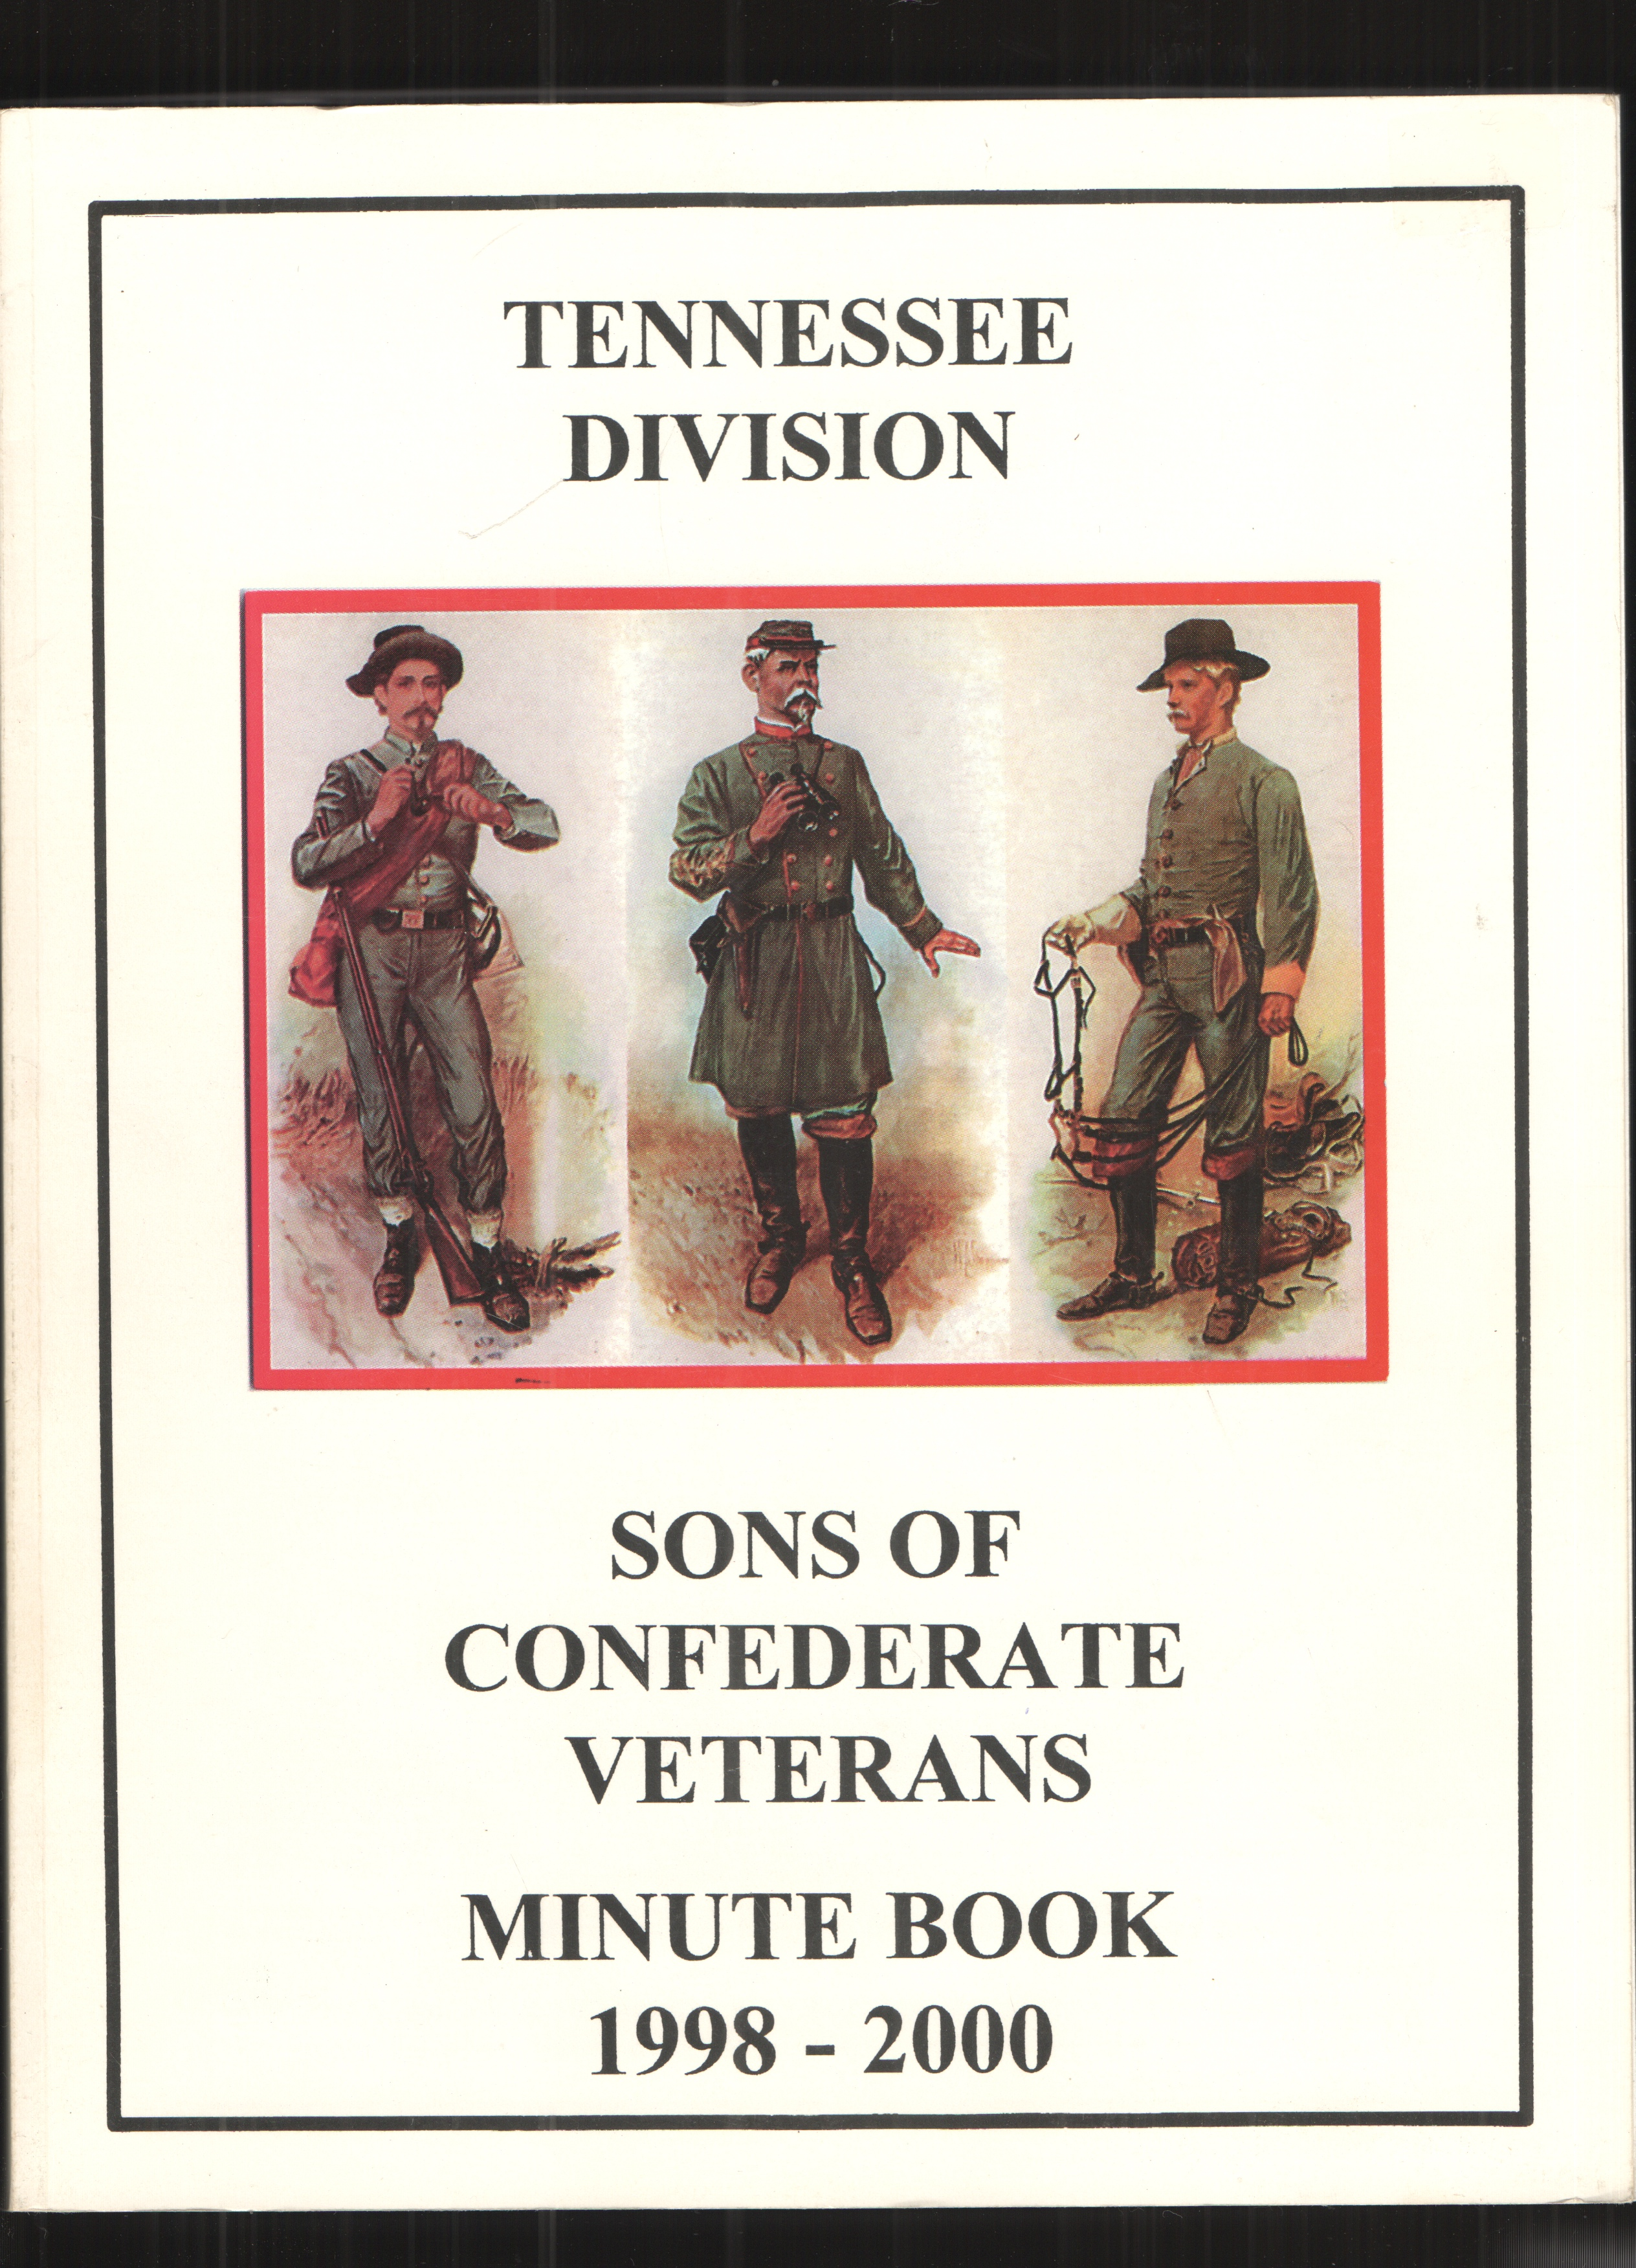 Image for Tennessee Division, Sons of Confederate Veterans Minute Book 1998-2000